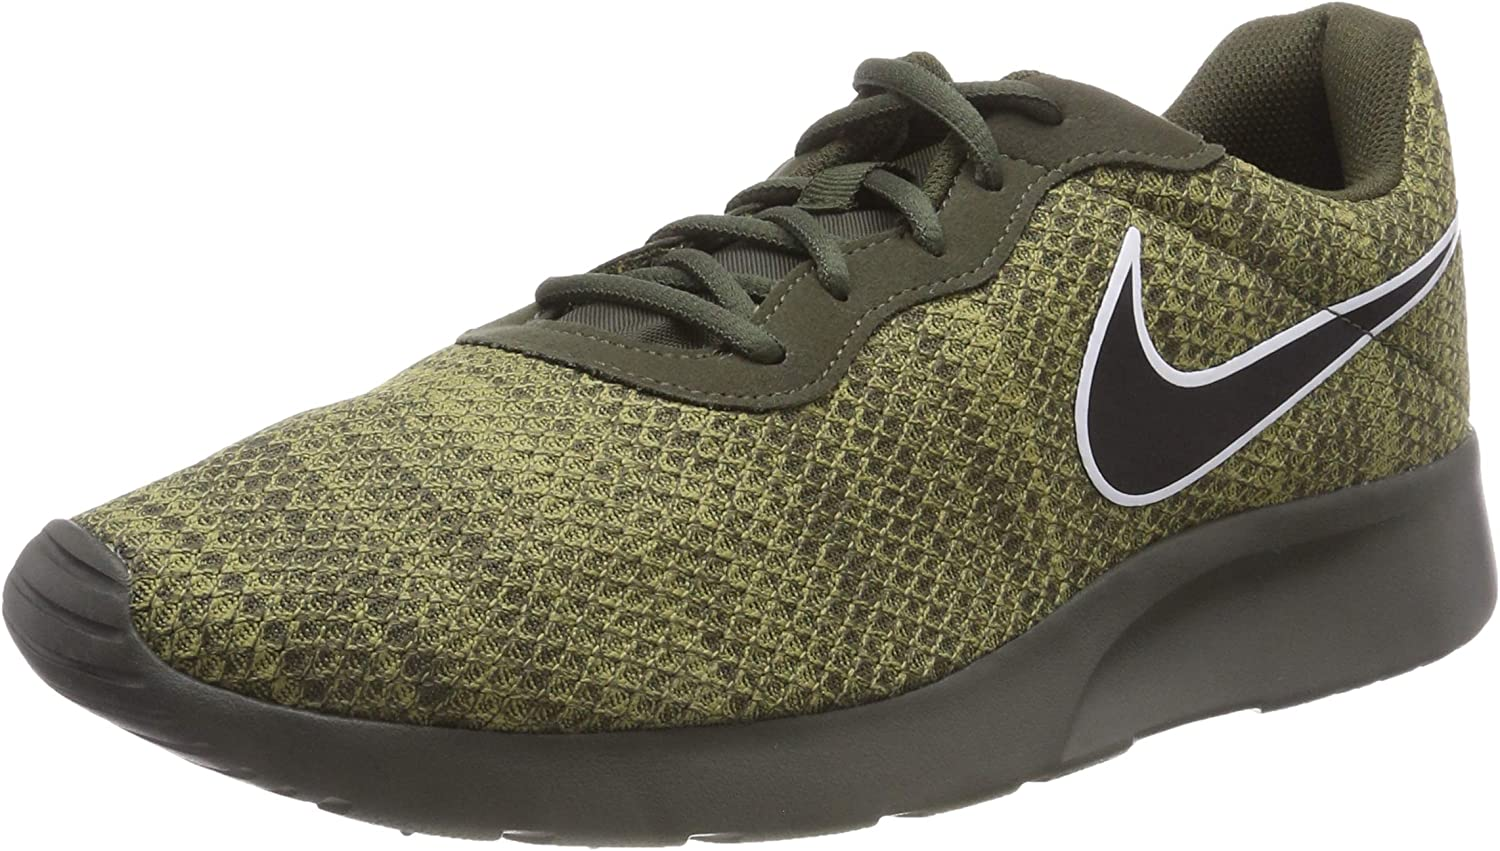 Nike Men s Tanjun Premium Running Shoes